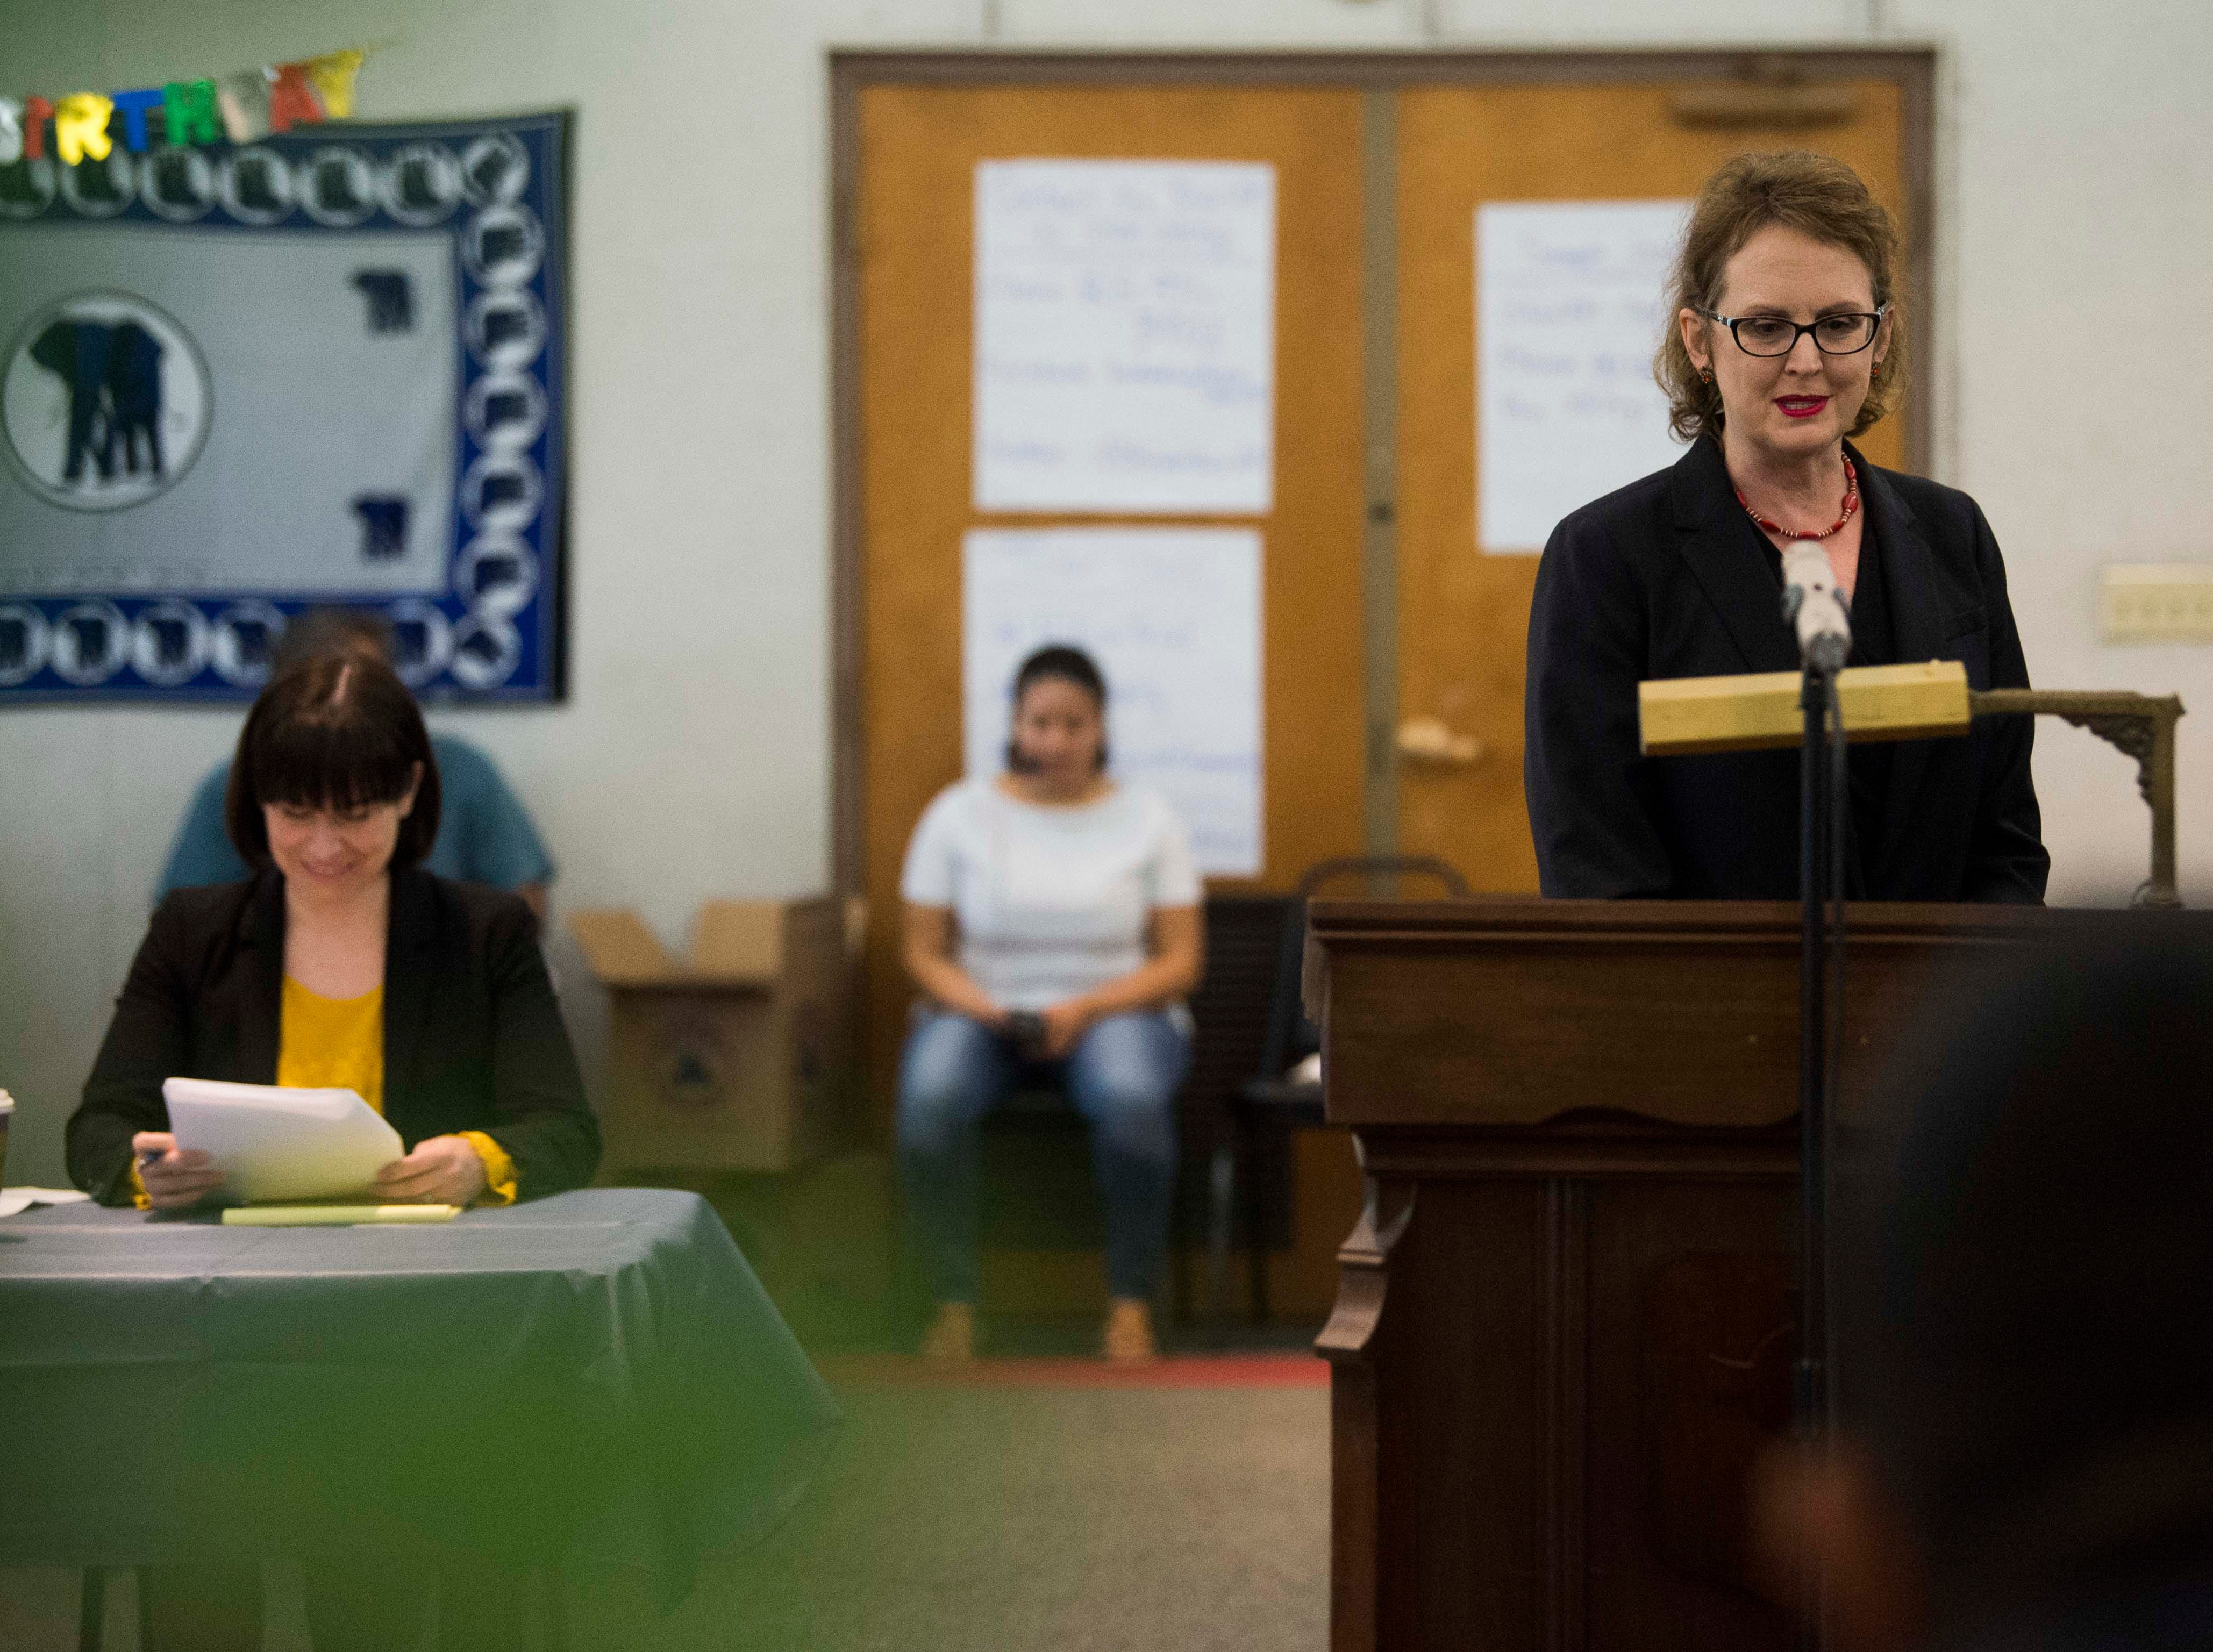 Julie Gautreau speaks during a mock trial of Allies of Knoxville's Immigrant neighbors at St. James Episcopal Church of Knoxville in Knoxville, Saturday, May 11, 2019. The court was part of the group's efforts to raise awareness about the negative effects of Knox County's 287(g) program, the only program of its kind in the state, which trains local officers to enforce federal immigration laws.